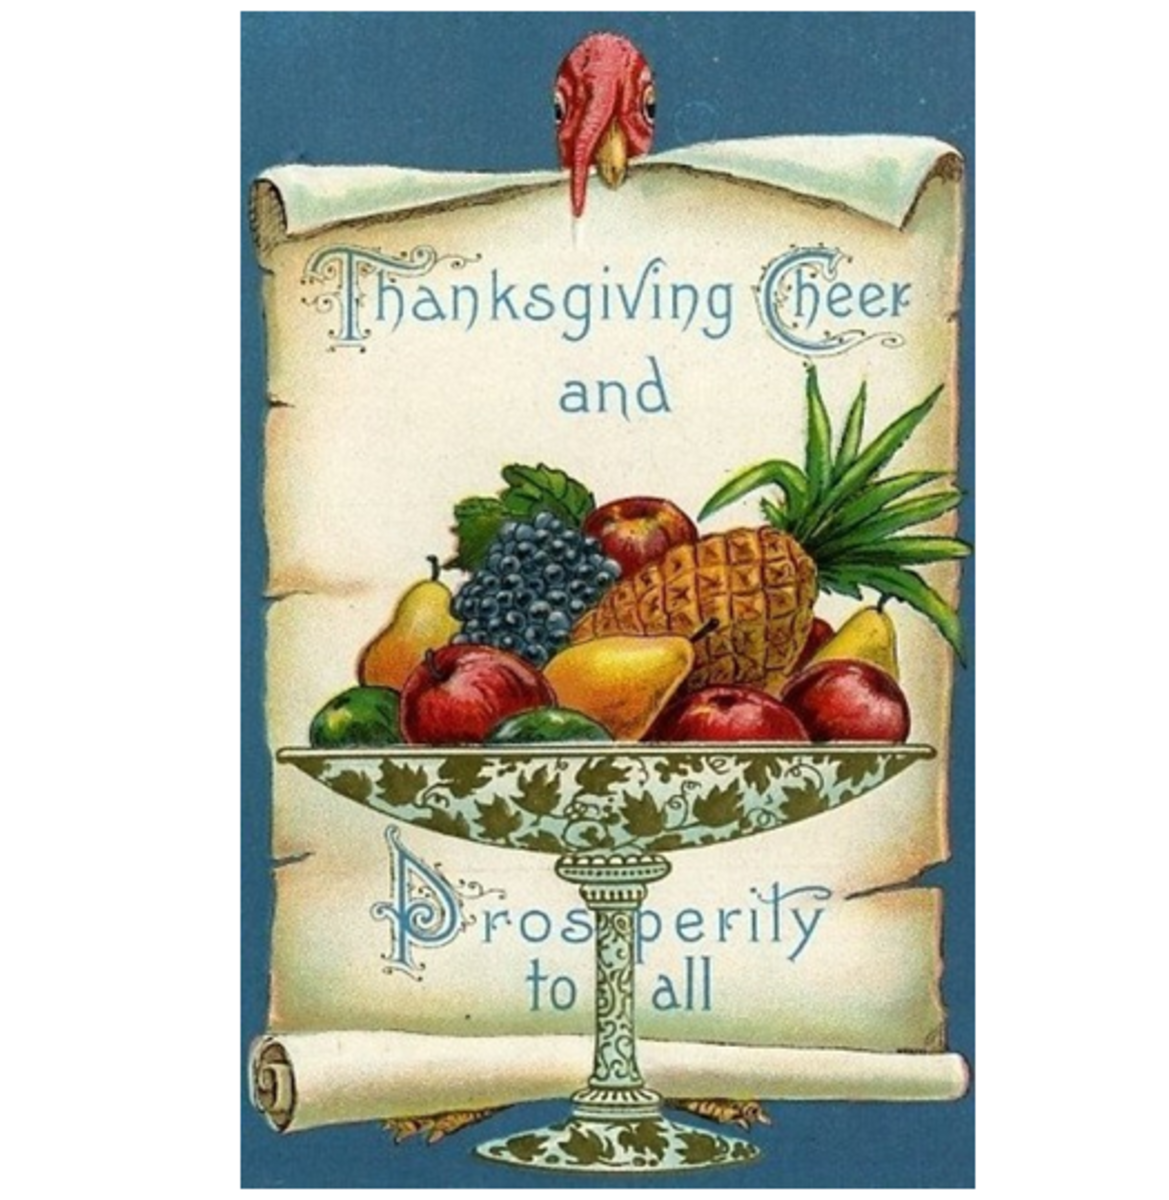 Thanksgiving Cheer and Prosperity